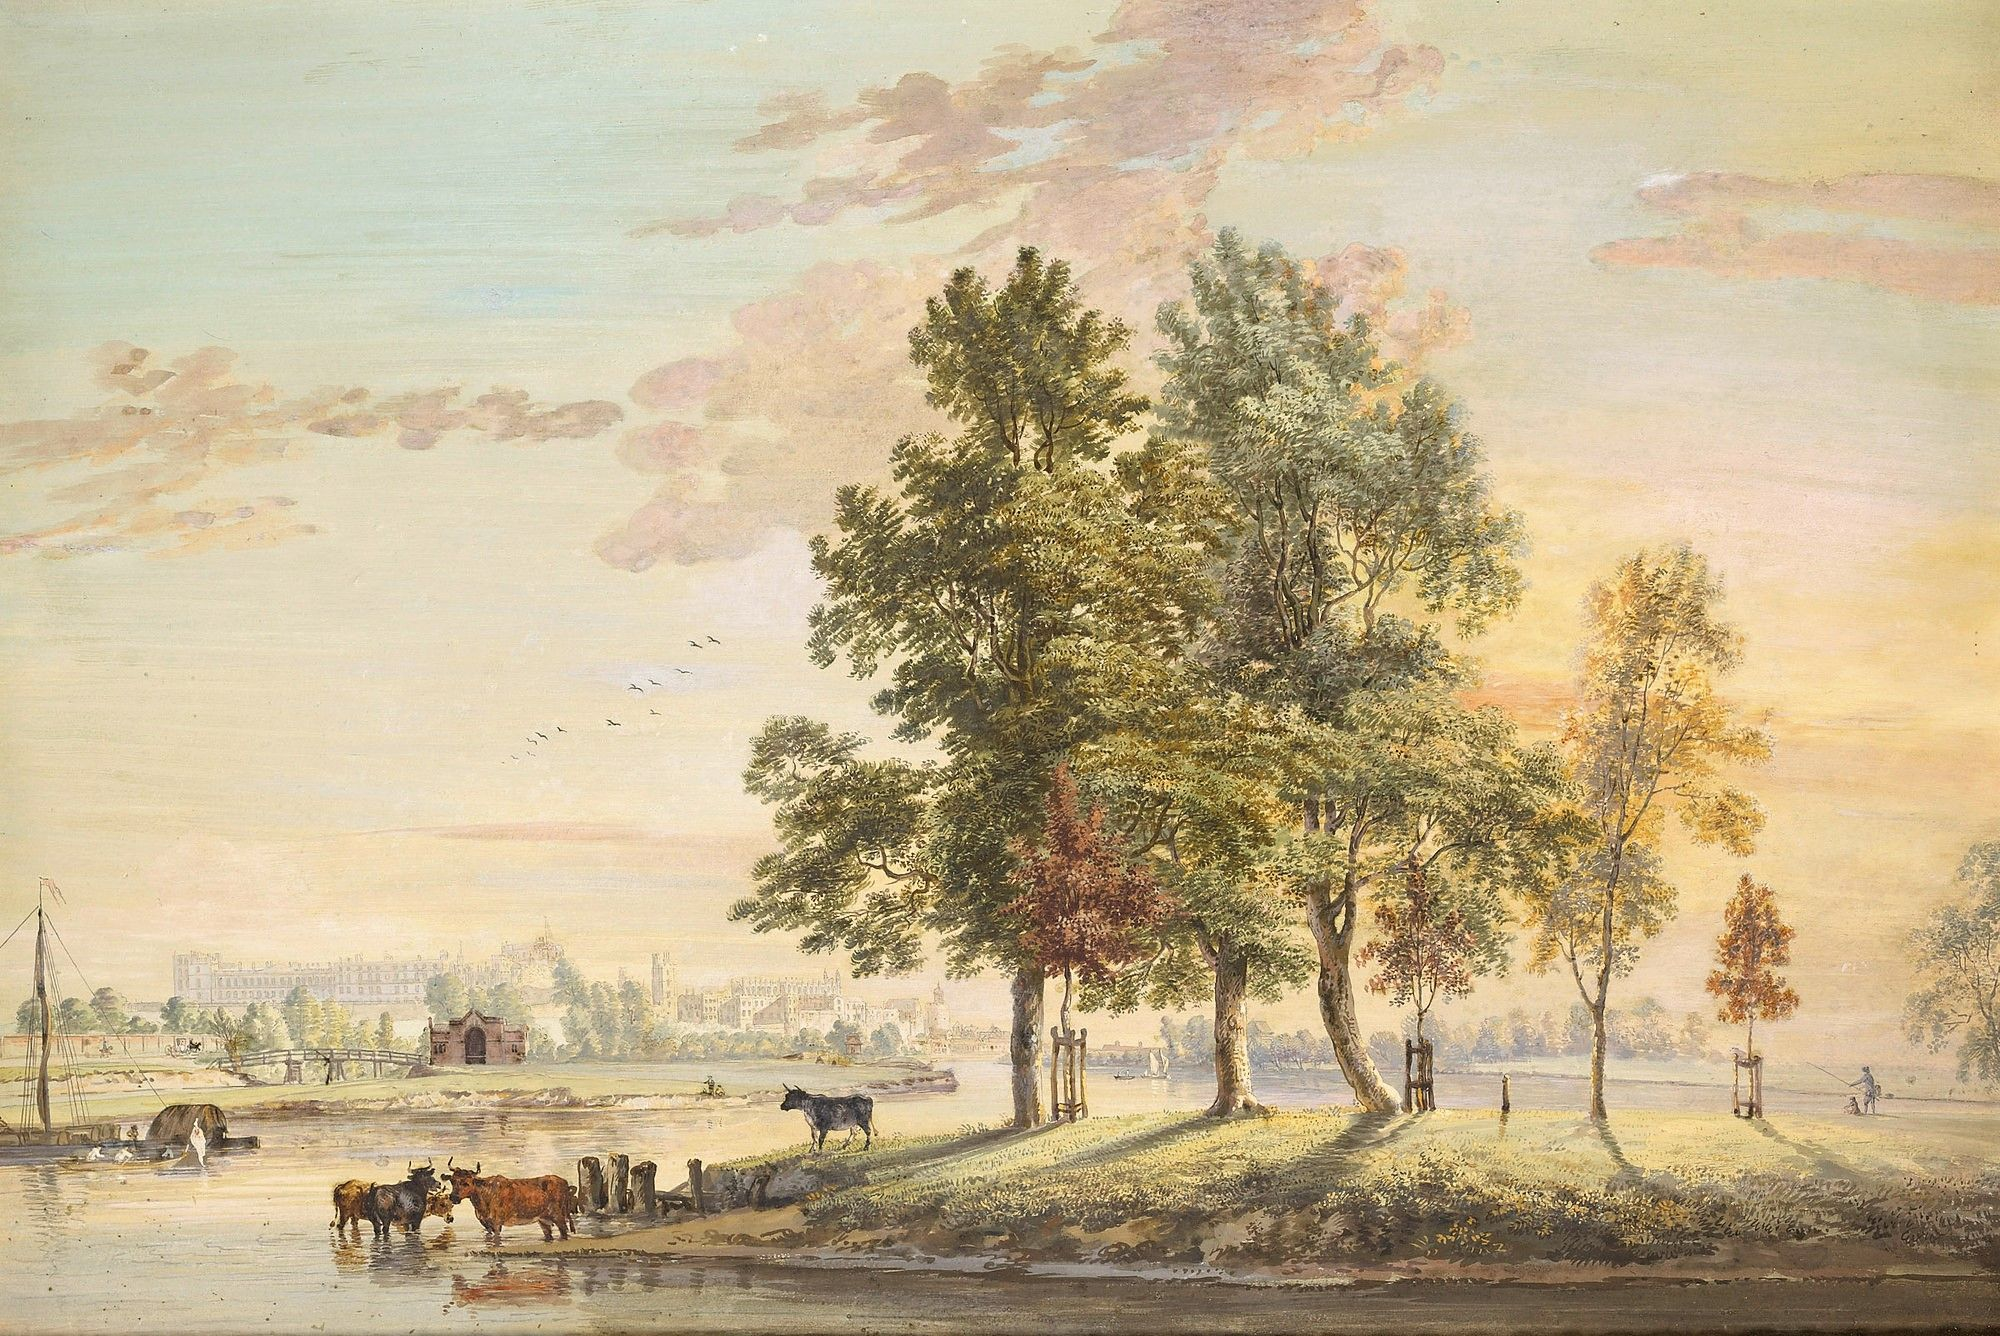 View from the Thames to north front of Windsor Castle   Paul Sandby